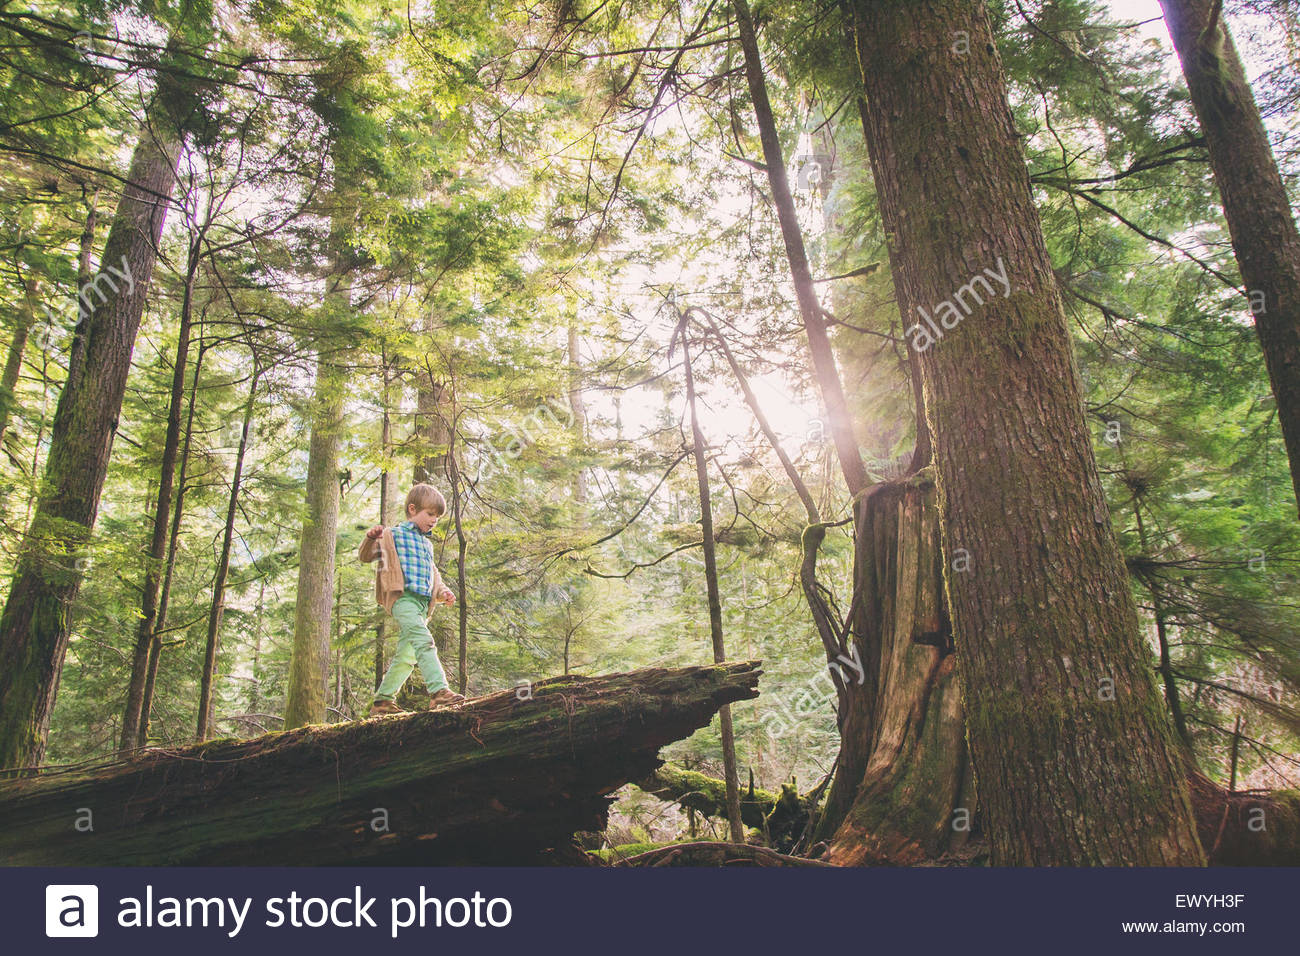 Young boy walking on fallen tree in the woods - Stock Image